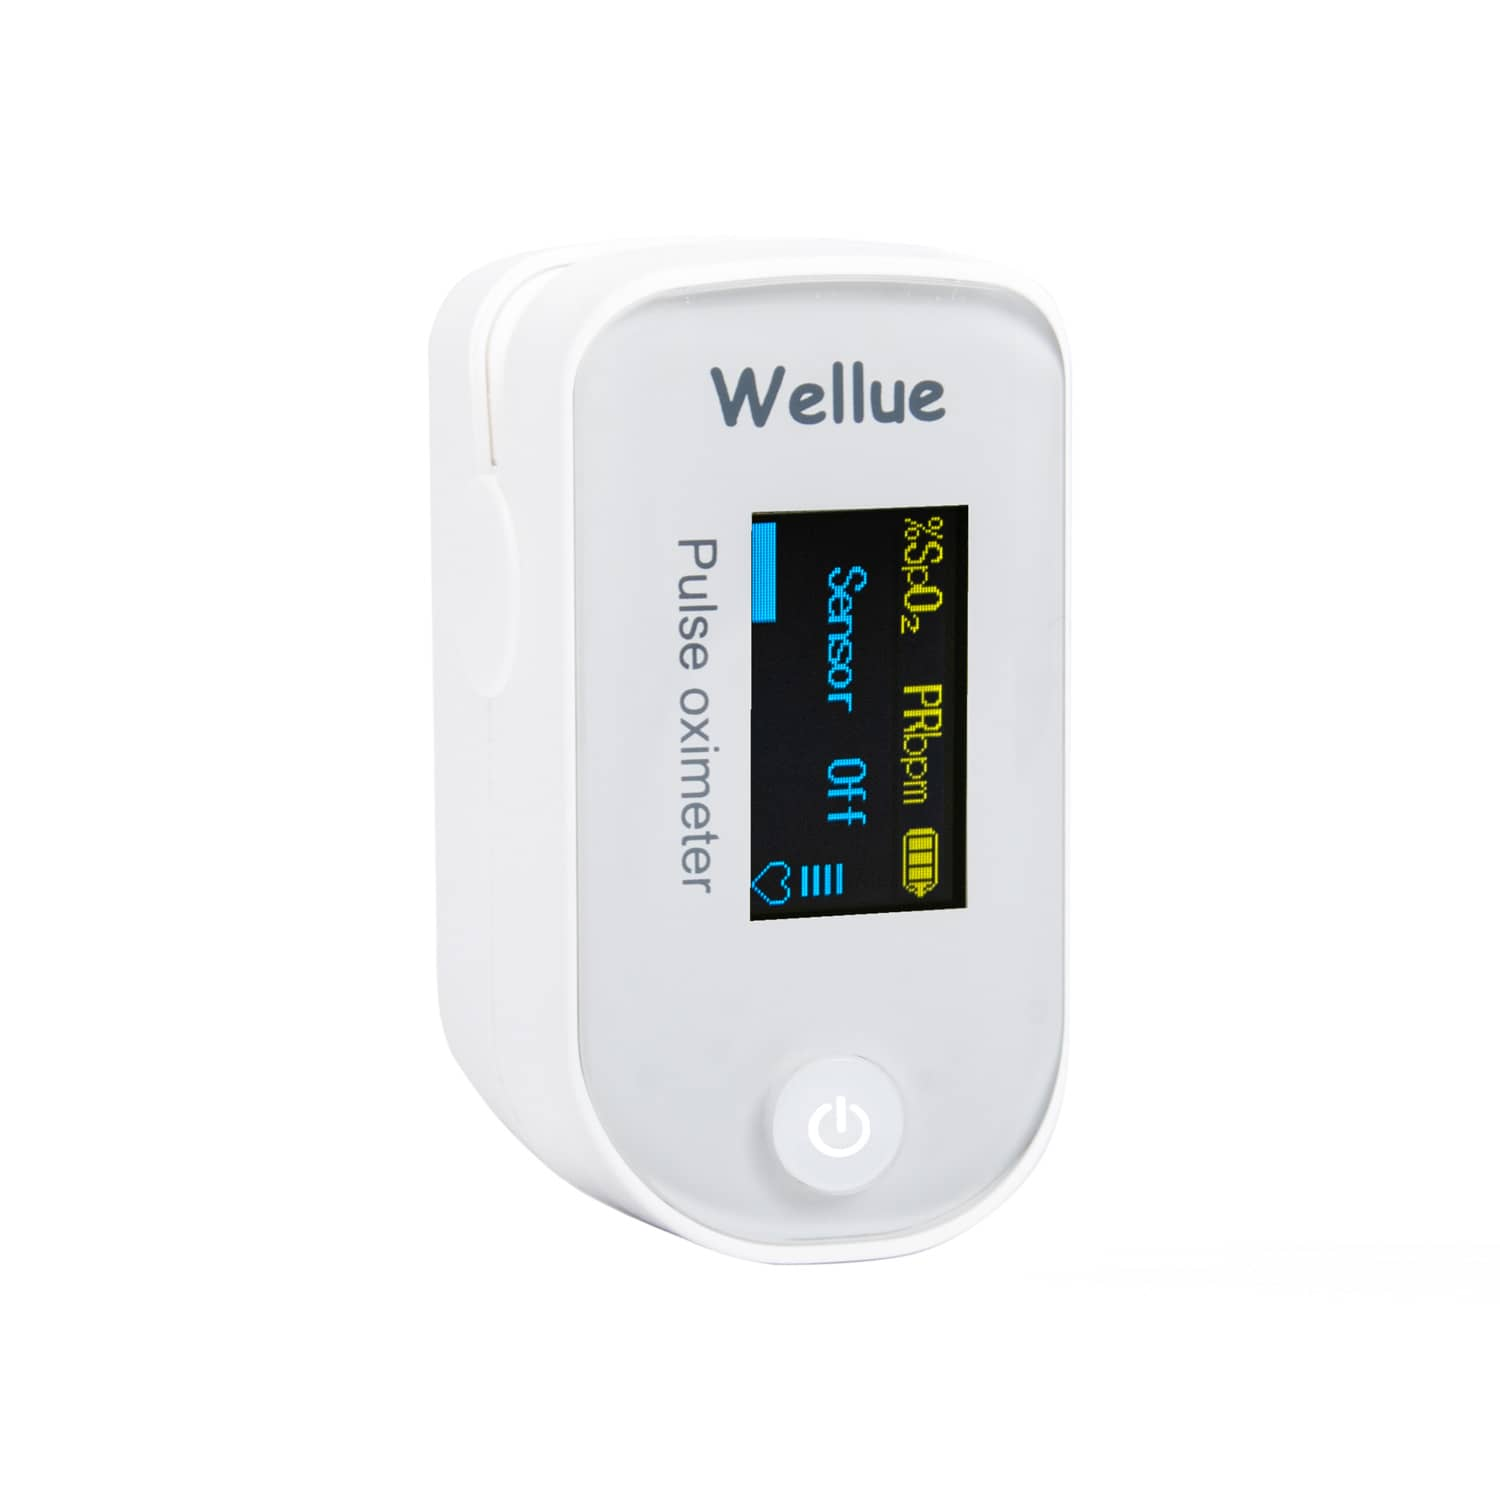 https://static.praxisdienst.com/out/pictures/generated/product/3/1500_1500_100/oxysmart_fingertip_oximeter_weiss_2.jpg